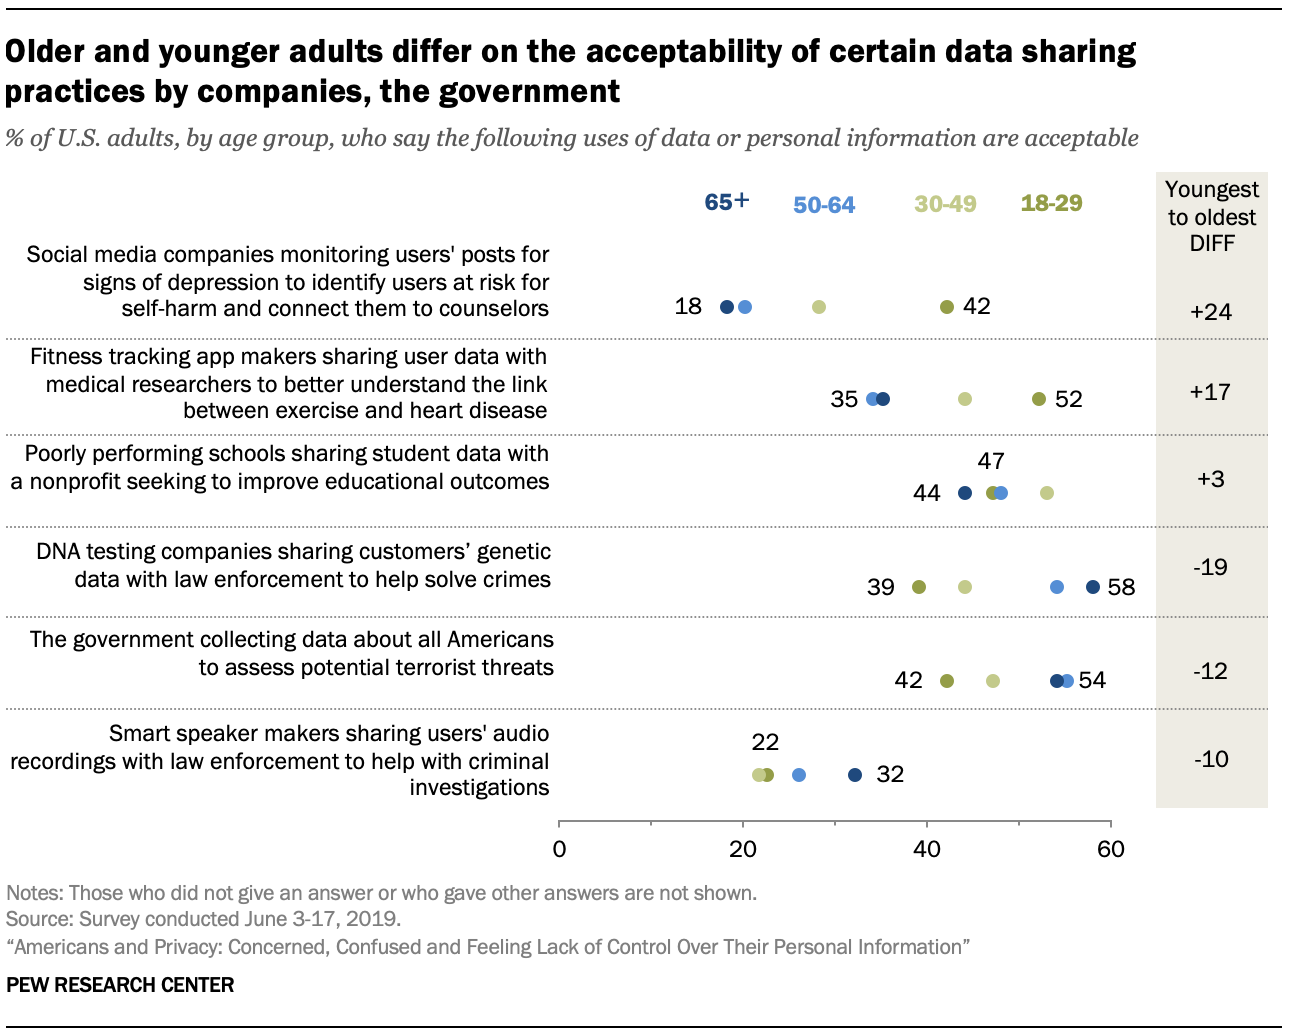 Older and younger adults differ in the level of acceptance of certain data-sharing practices by companies, the government